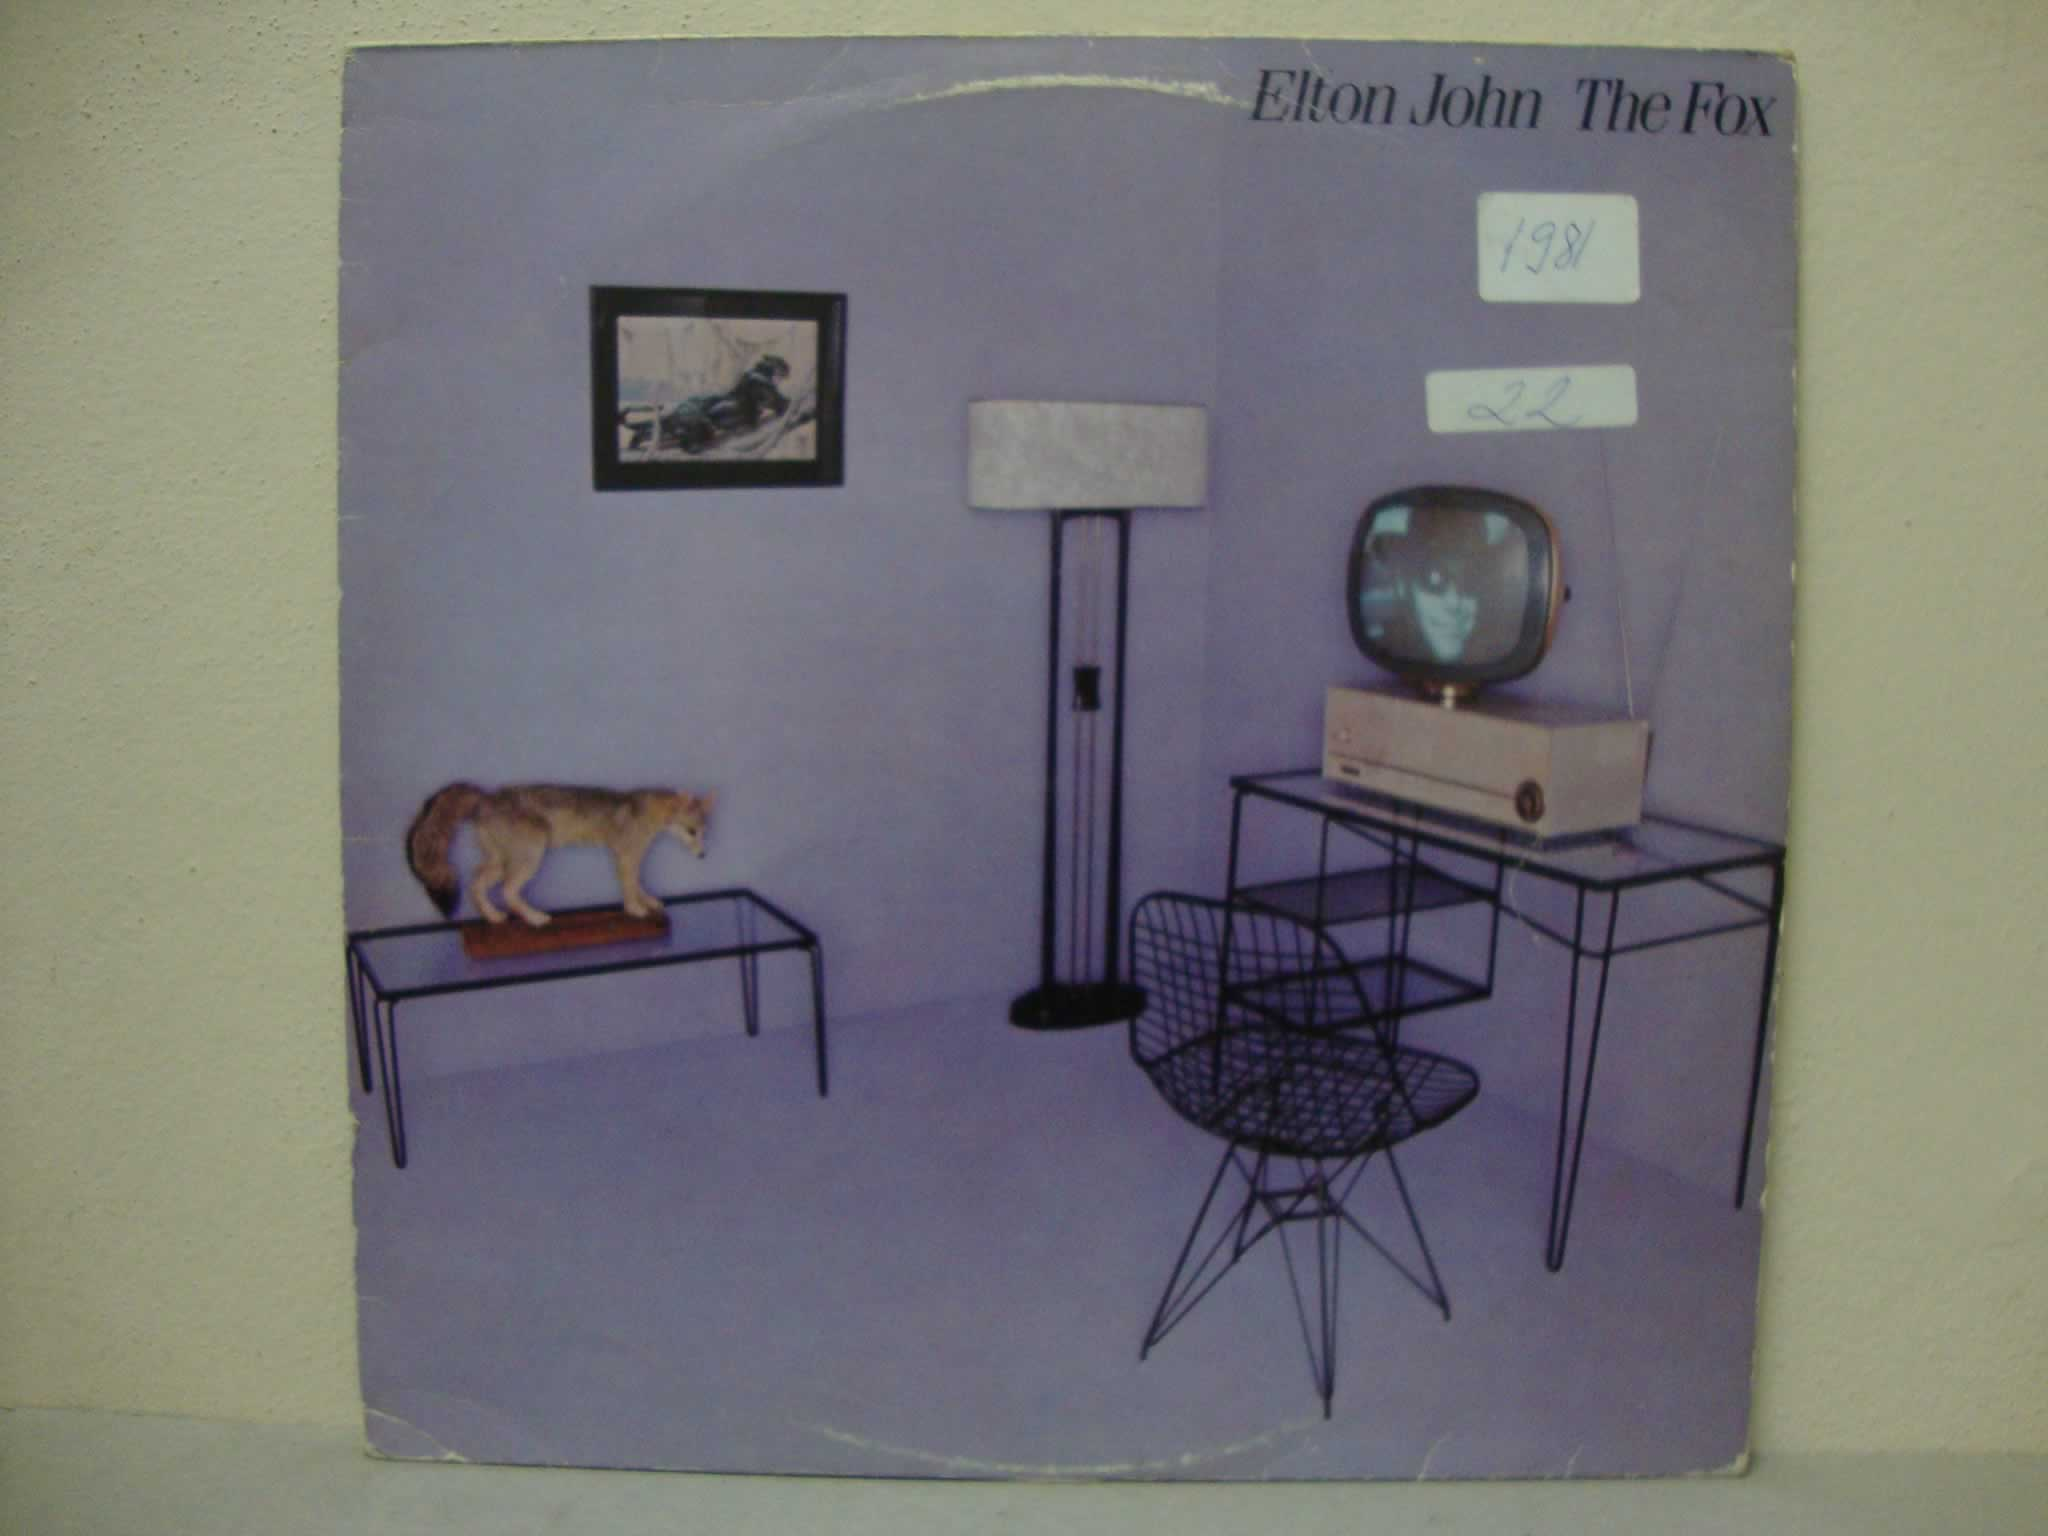 VINIL ELTON JOHN - THE FOX